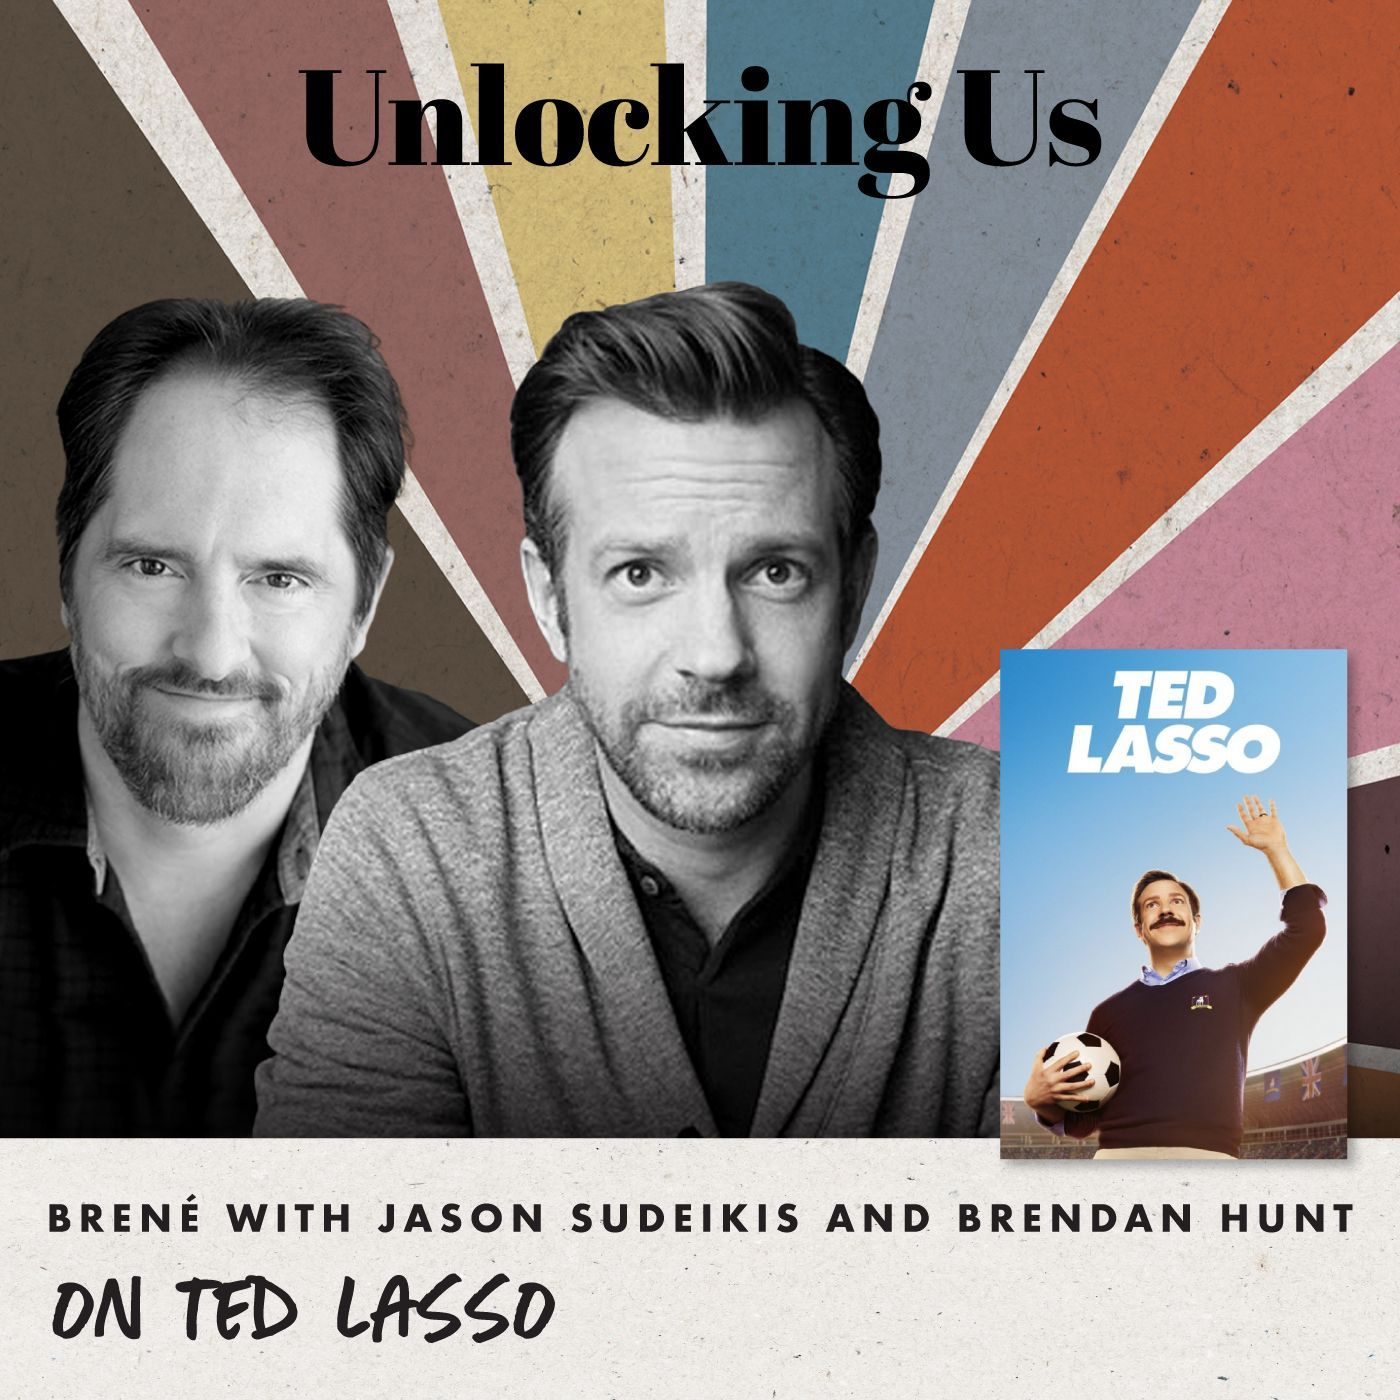 Brené with Jason Sudeikis & Brendan Hunt on Ted Lasso